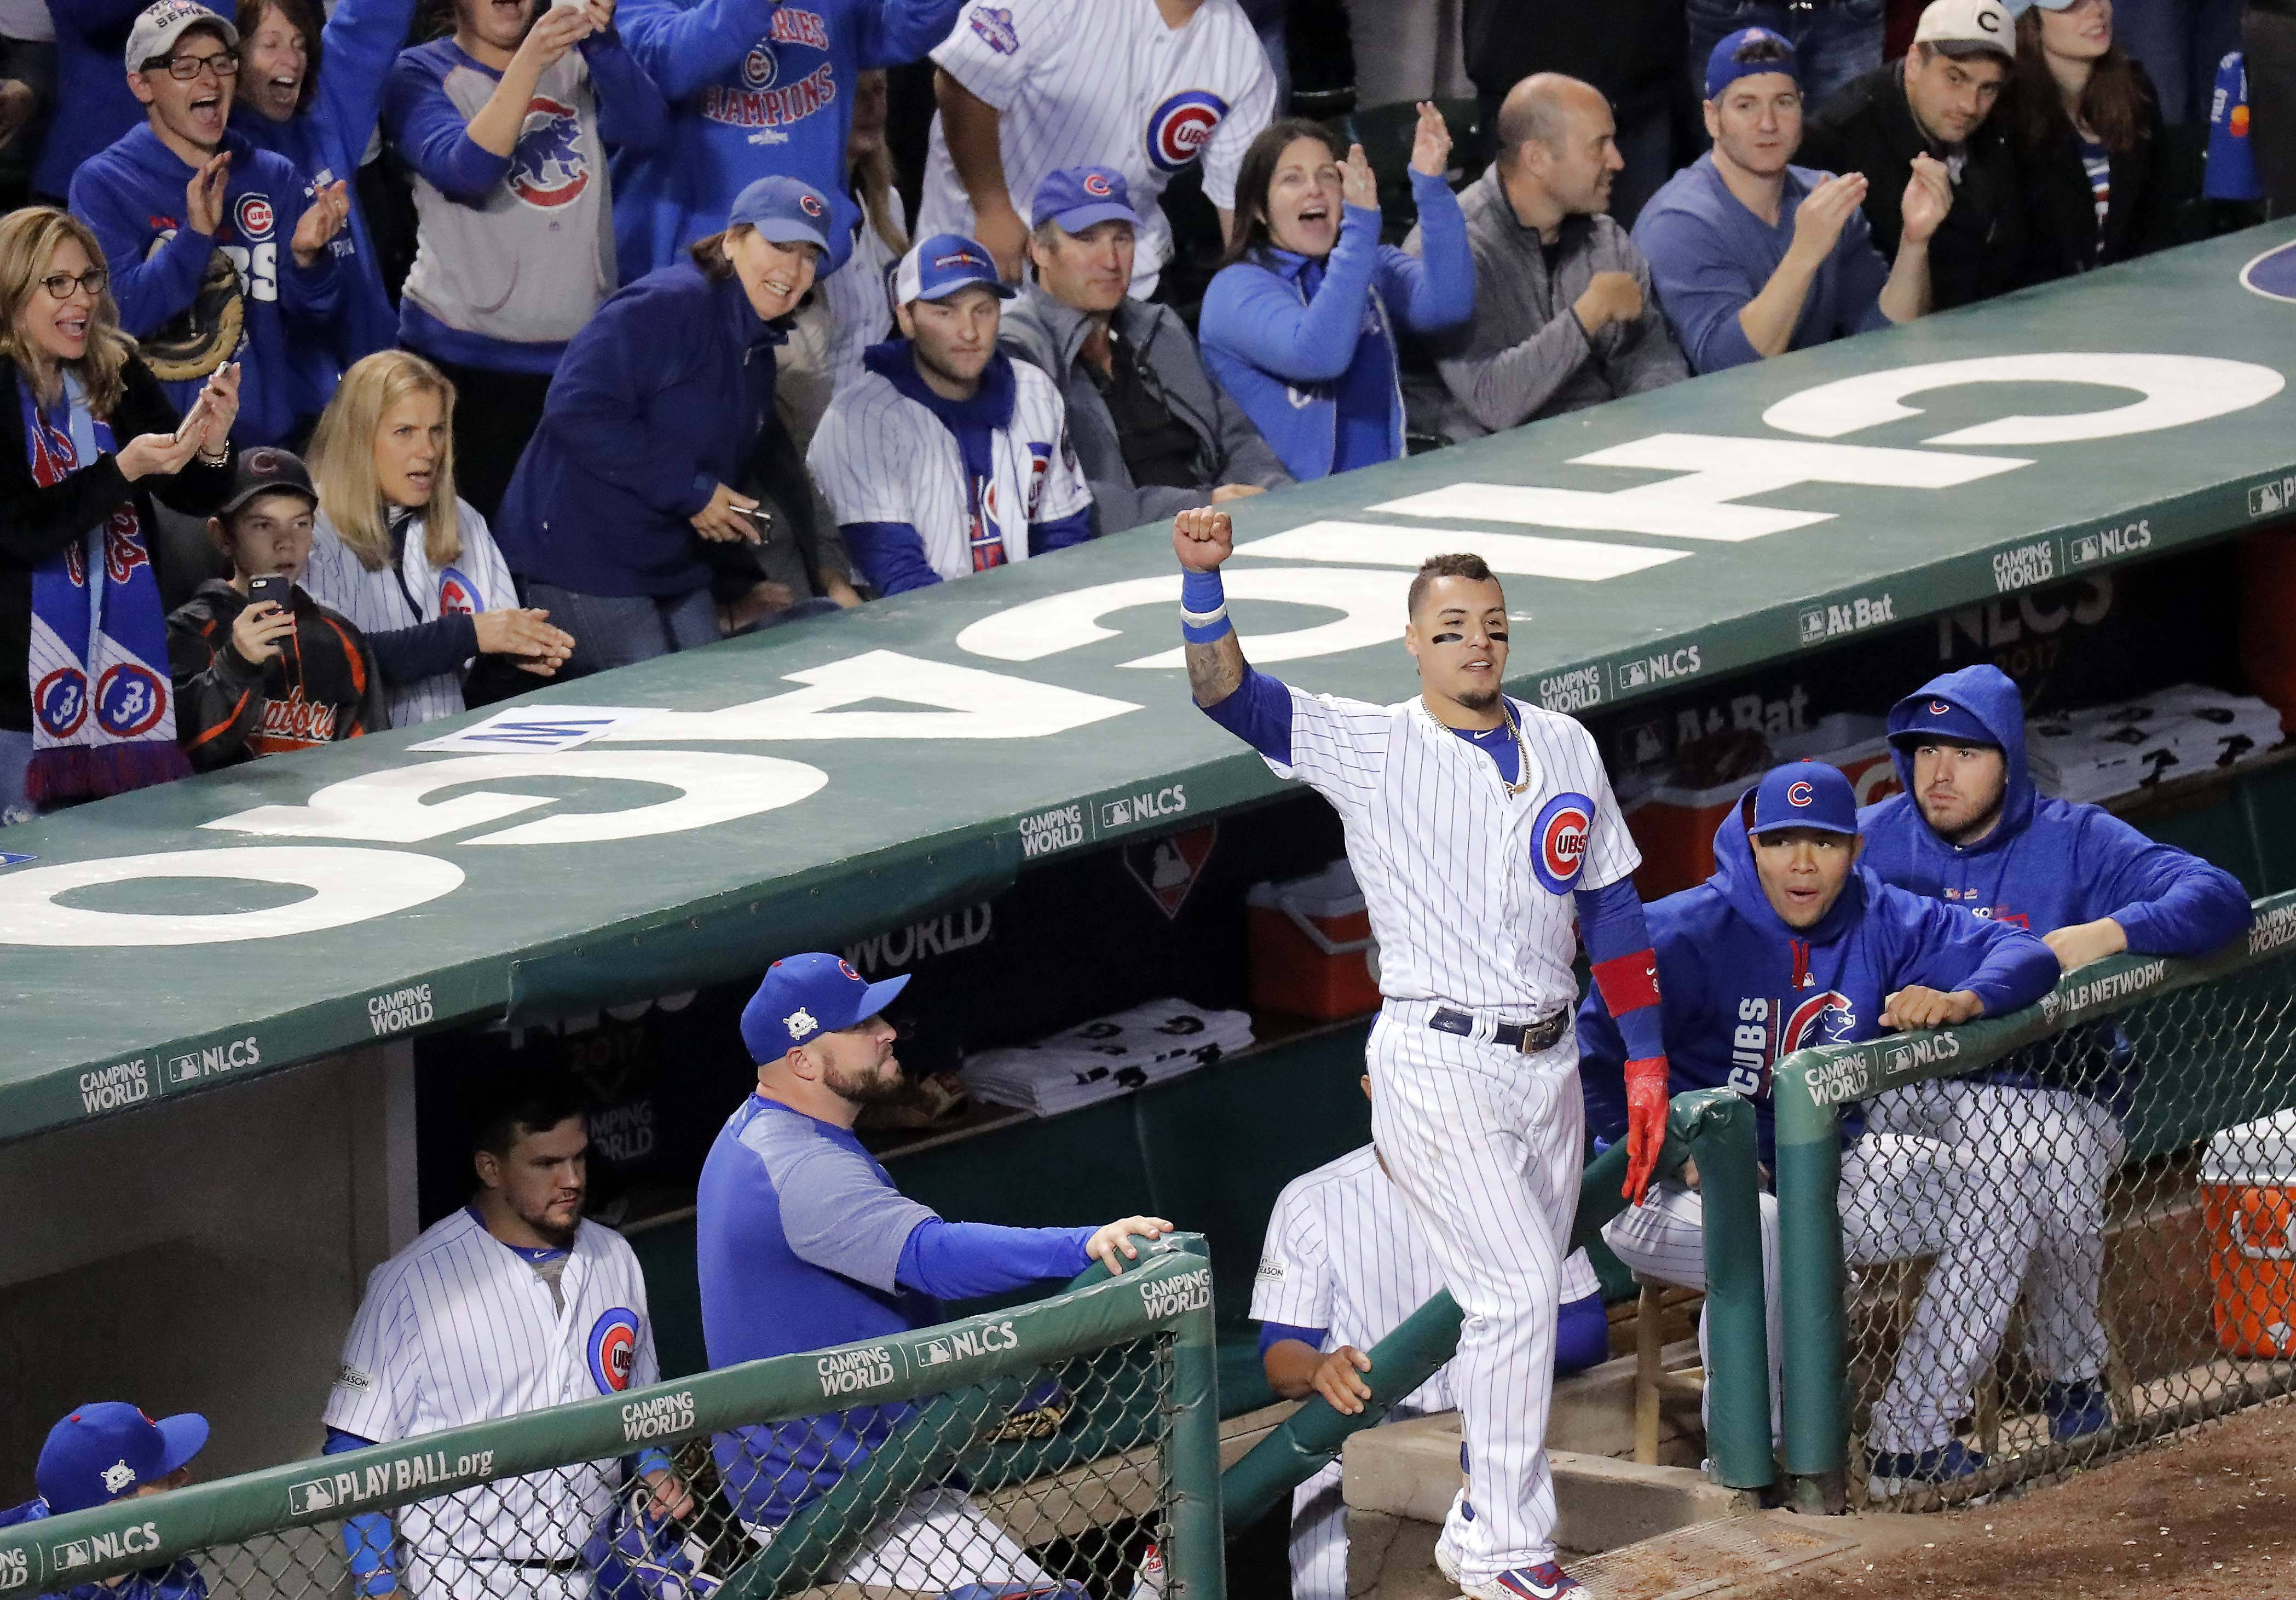 Cubs second baseman Javier Baez comes out for a curtain call after his home run in the fifth inning during Game 4 of the National League Championship Series, Oct, 18 2017, at Wrigley Field in Chicago. The Cubs survived a thriller in Game 4, hanging on to force a Game 5 at Wrigley Field Thursday night.